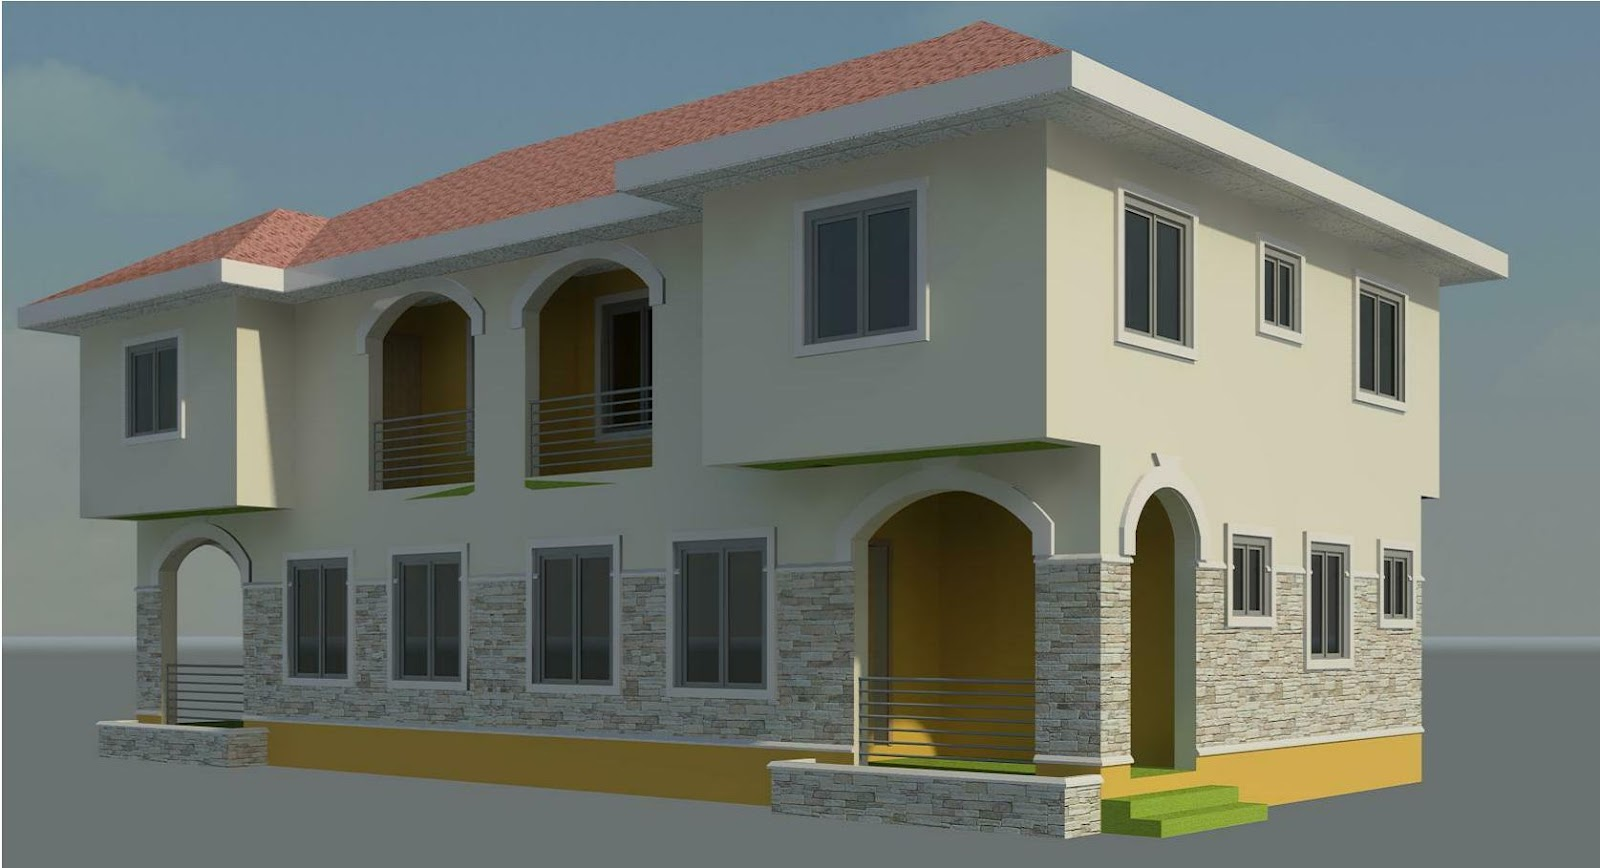 2 storey apartments designs joy studio design gallery for One story apartments